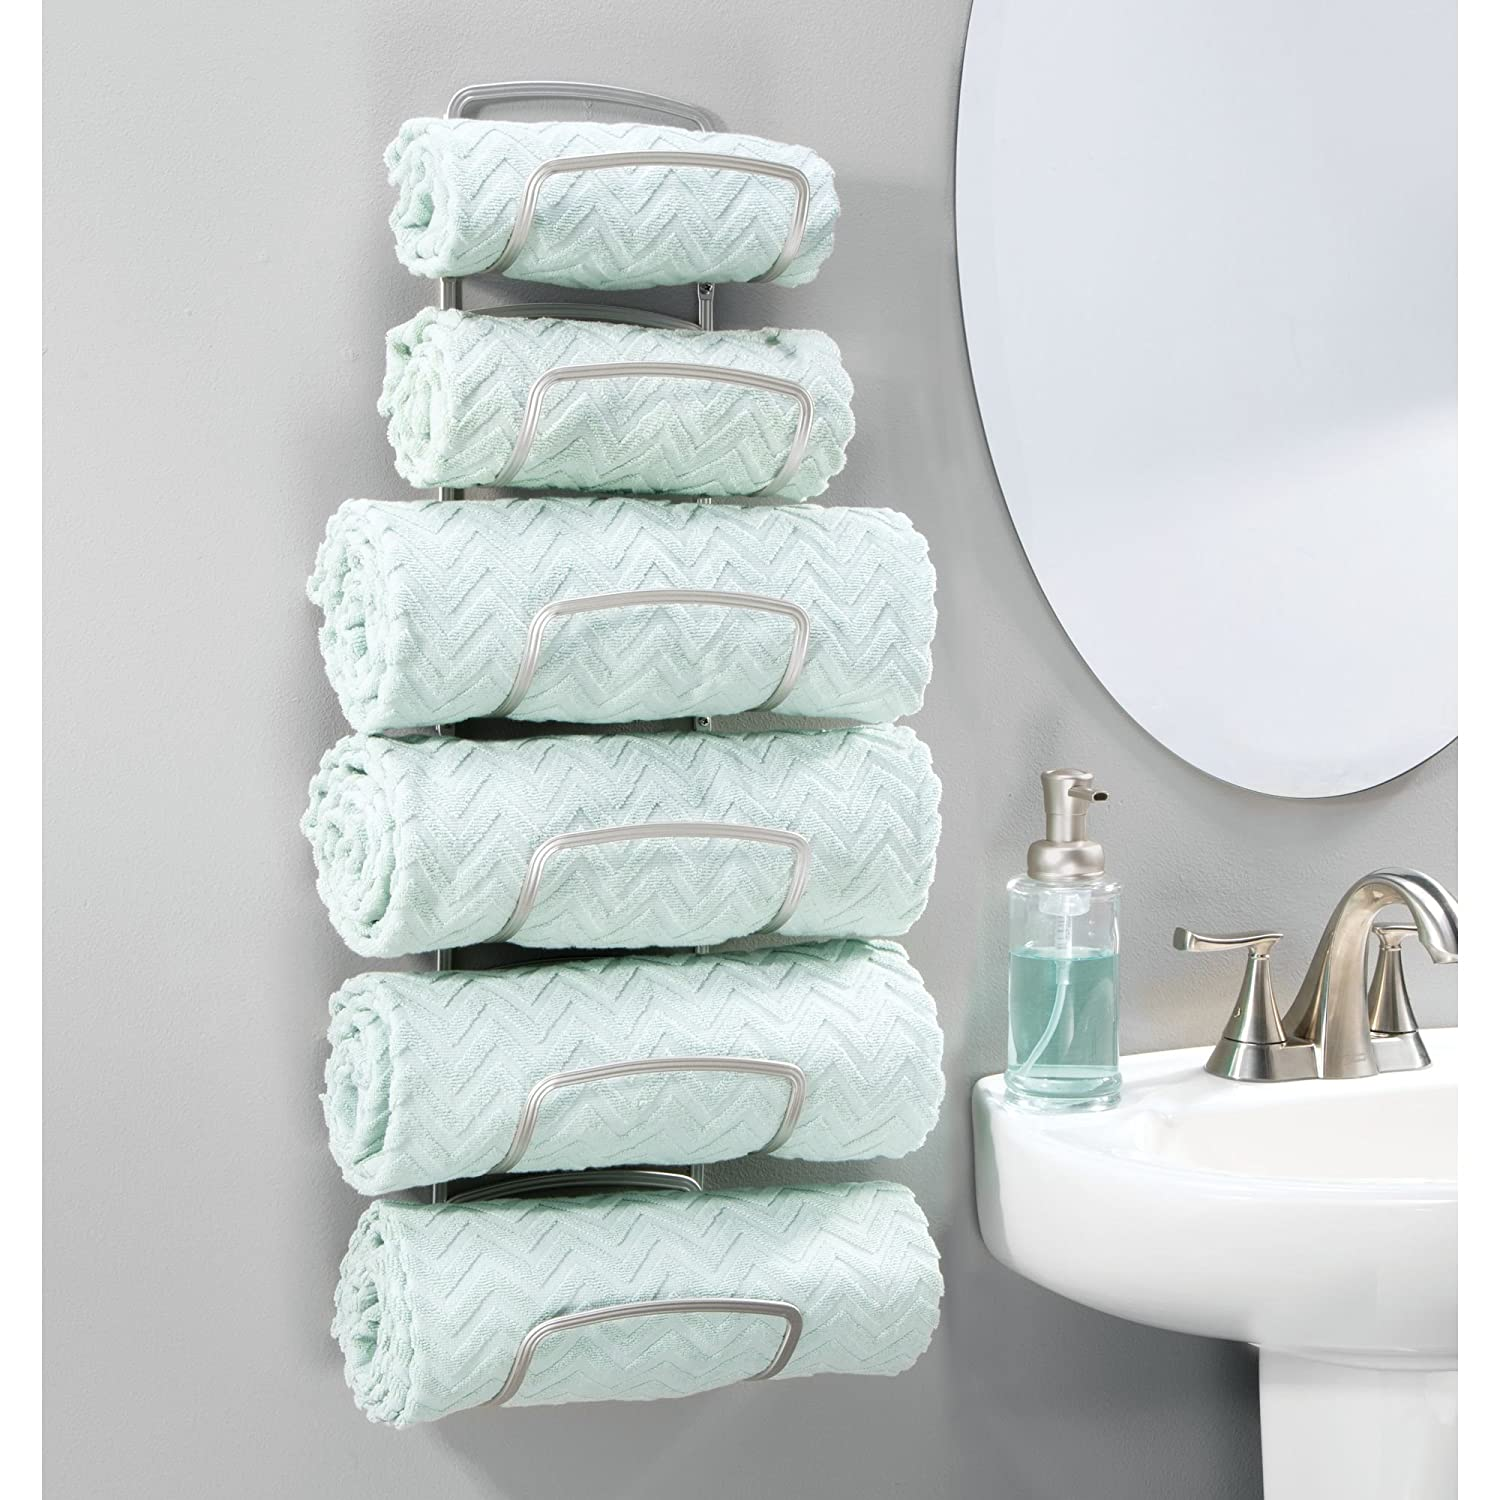 Amazon.com: mDesign Modern Decorative Six Level Bathroom Towel Rack ...